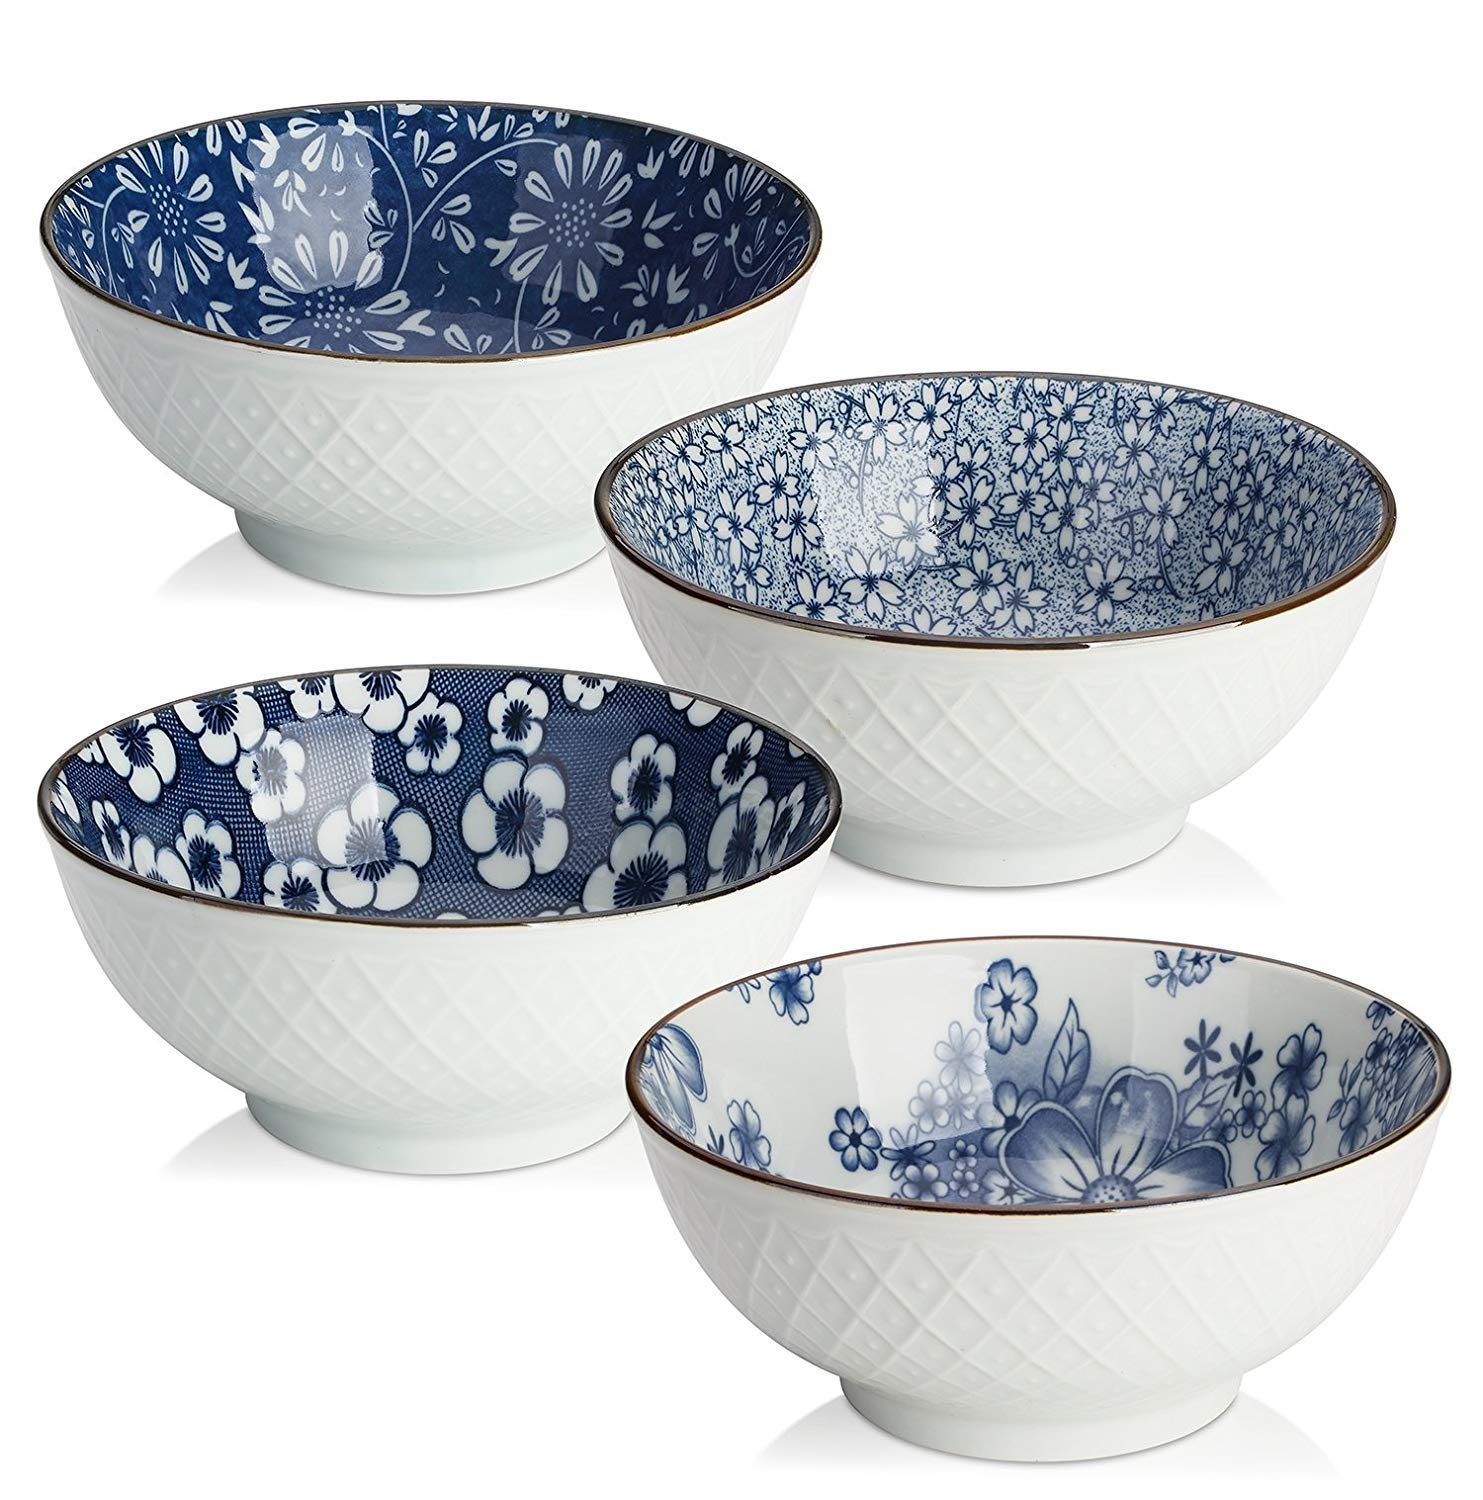 Airmoon Ceramic Bowl Set, Japanese Design Bowls for Cereal/Soup, Blue and White, Set of 4